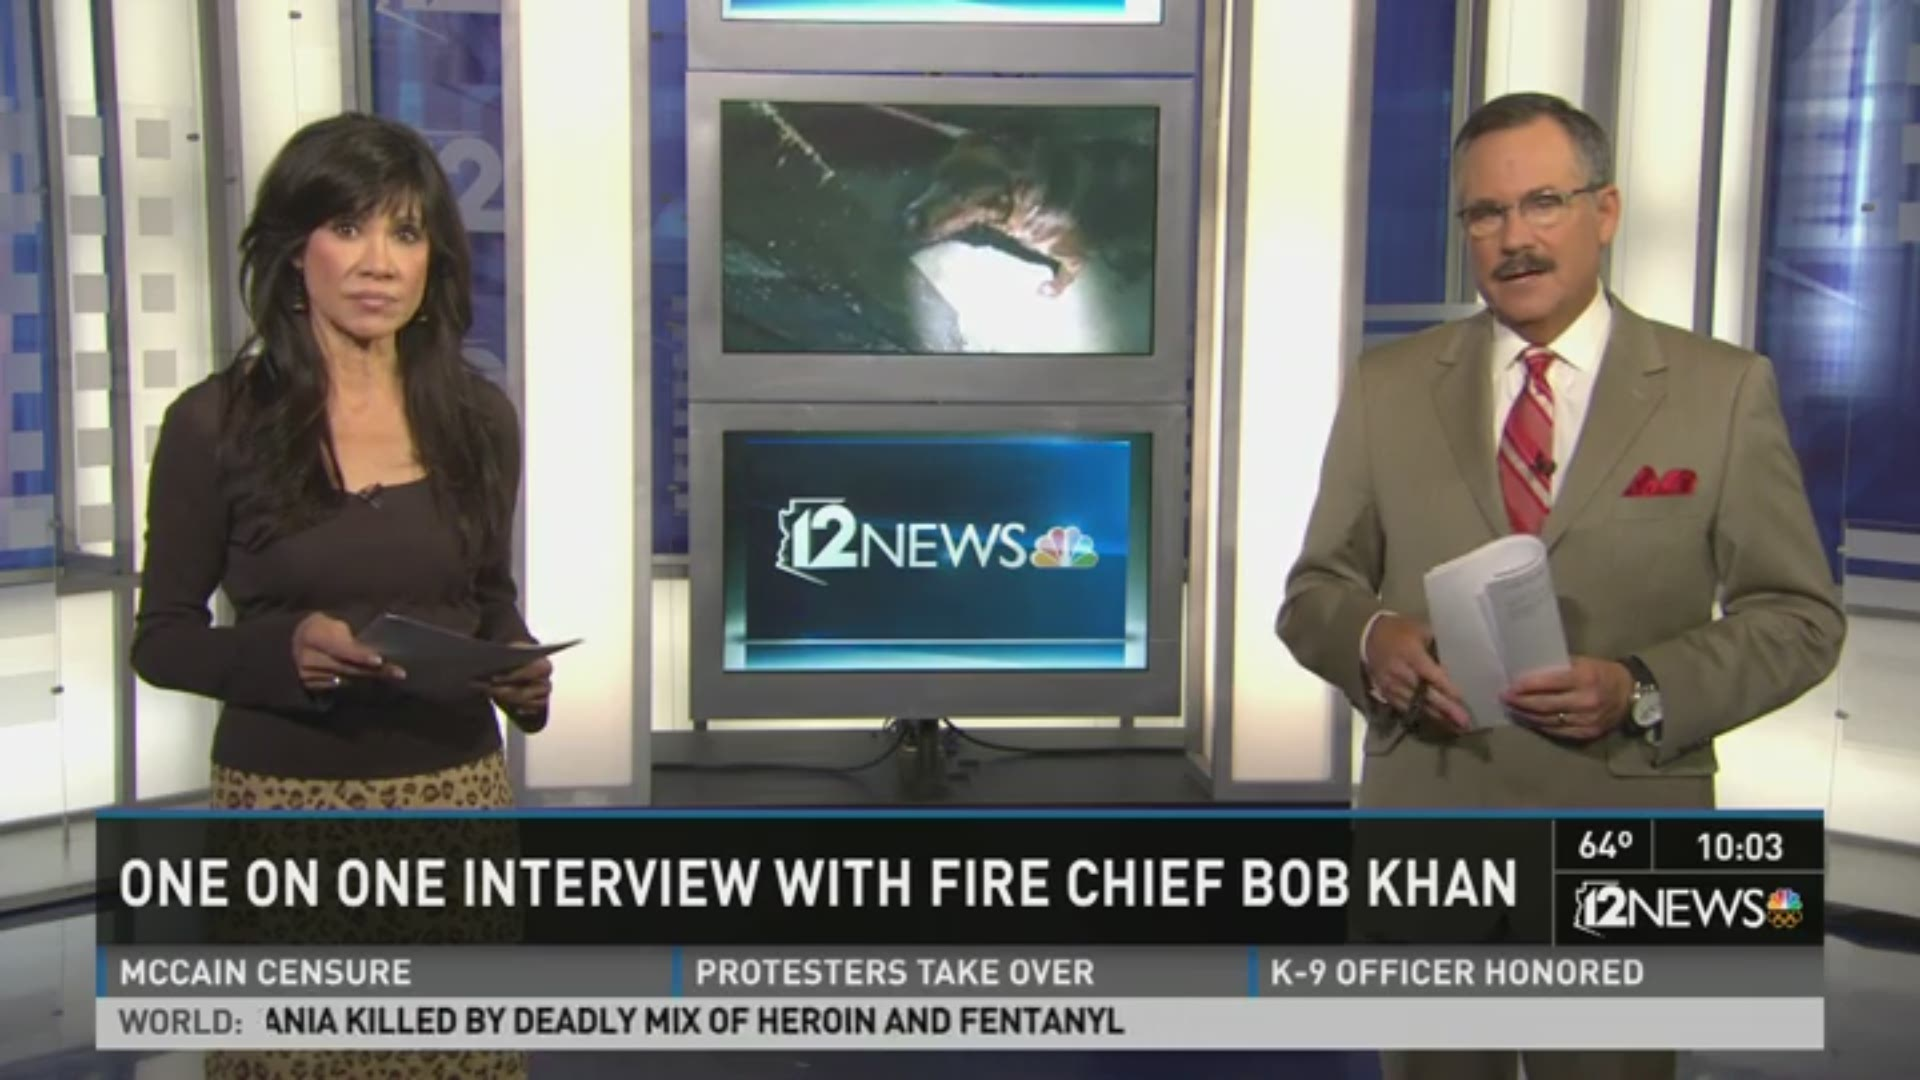 One-on-one interview with Chief Bob Khan, unaware of misconduct